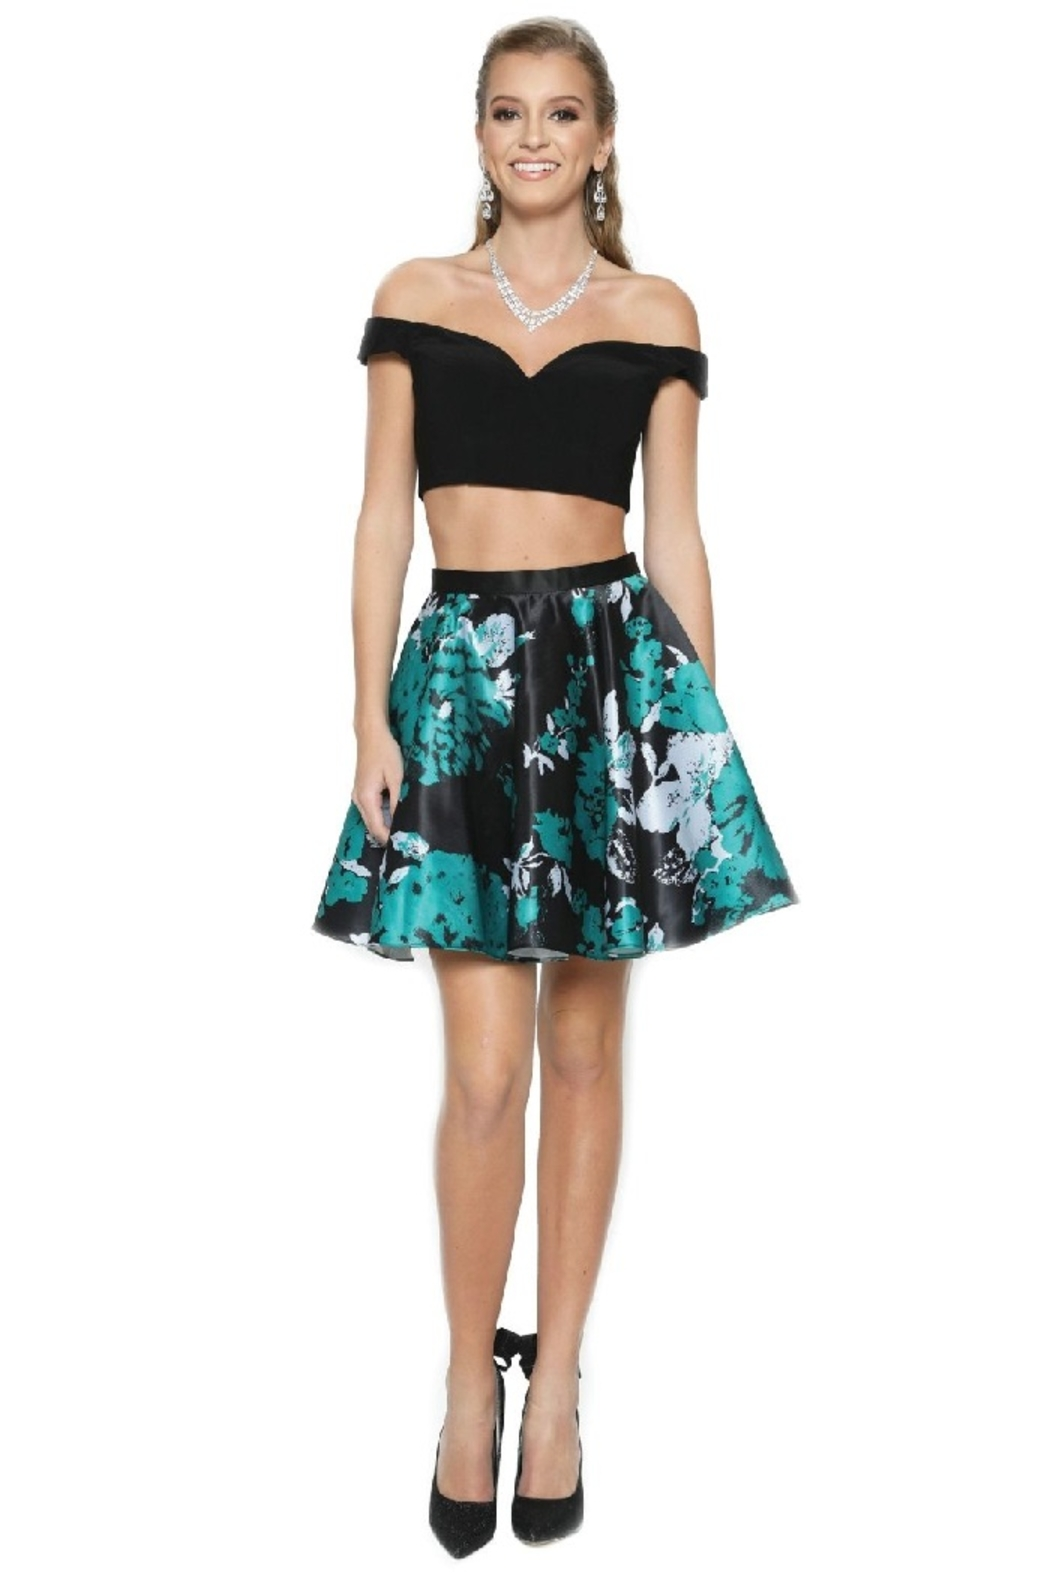 Juliet Black & Green Two Piece Formal Short Dress - Main Image